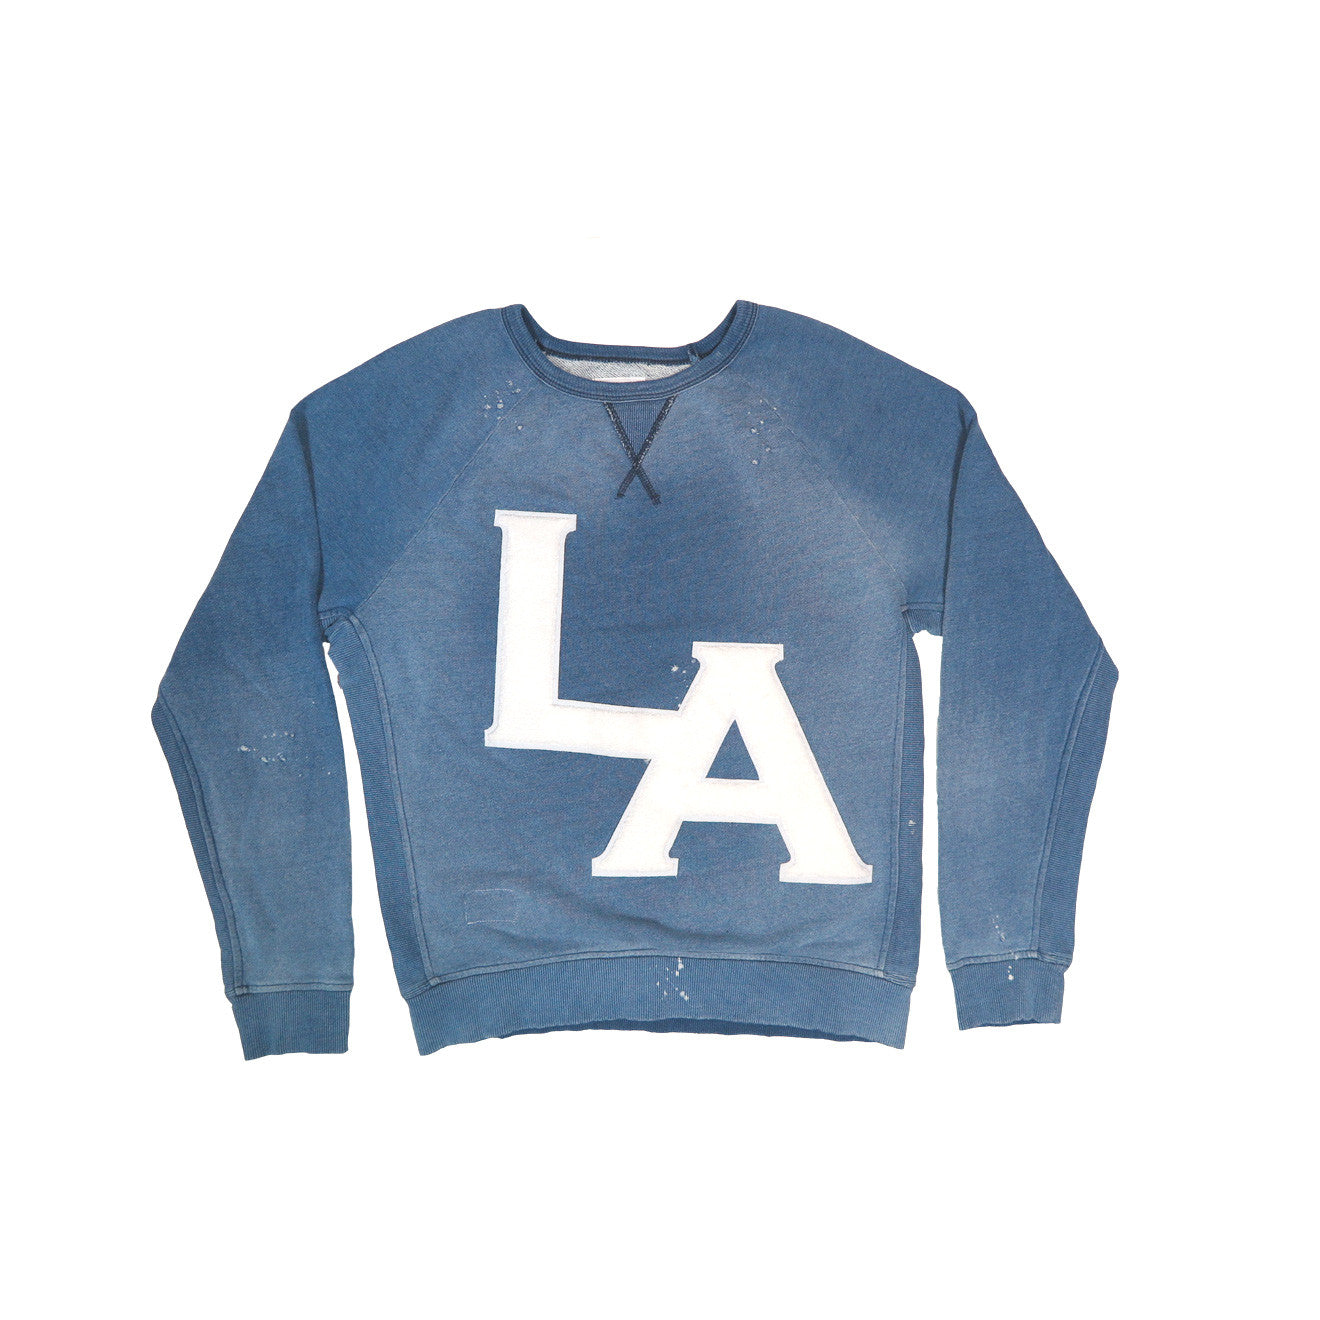 MEN'S LA EMBROIDERED PATCH  VINTAGE INDIGO SWEATSHIRT | Instantly Available